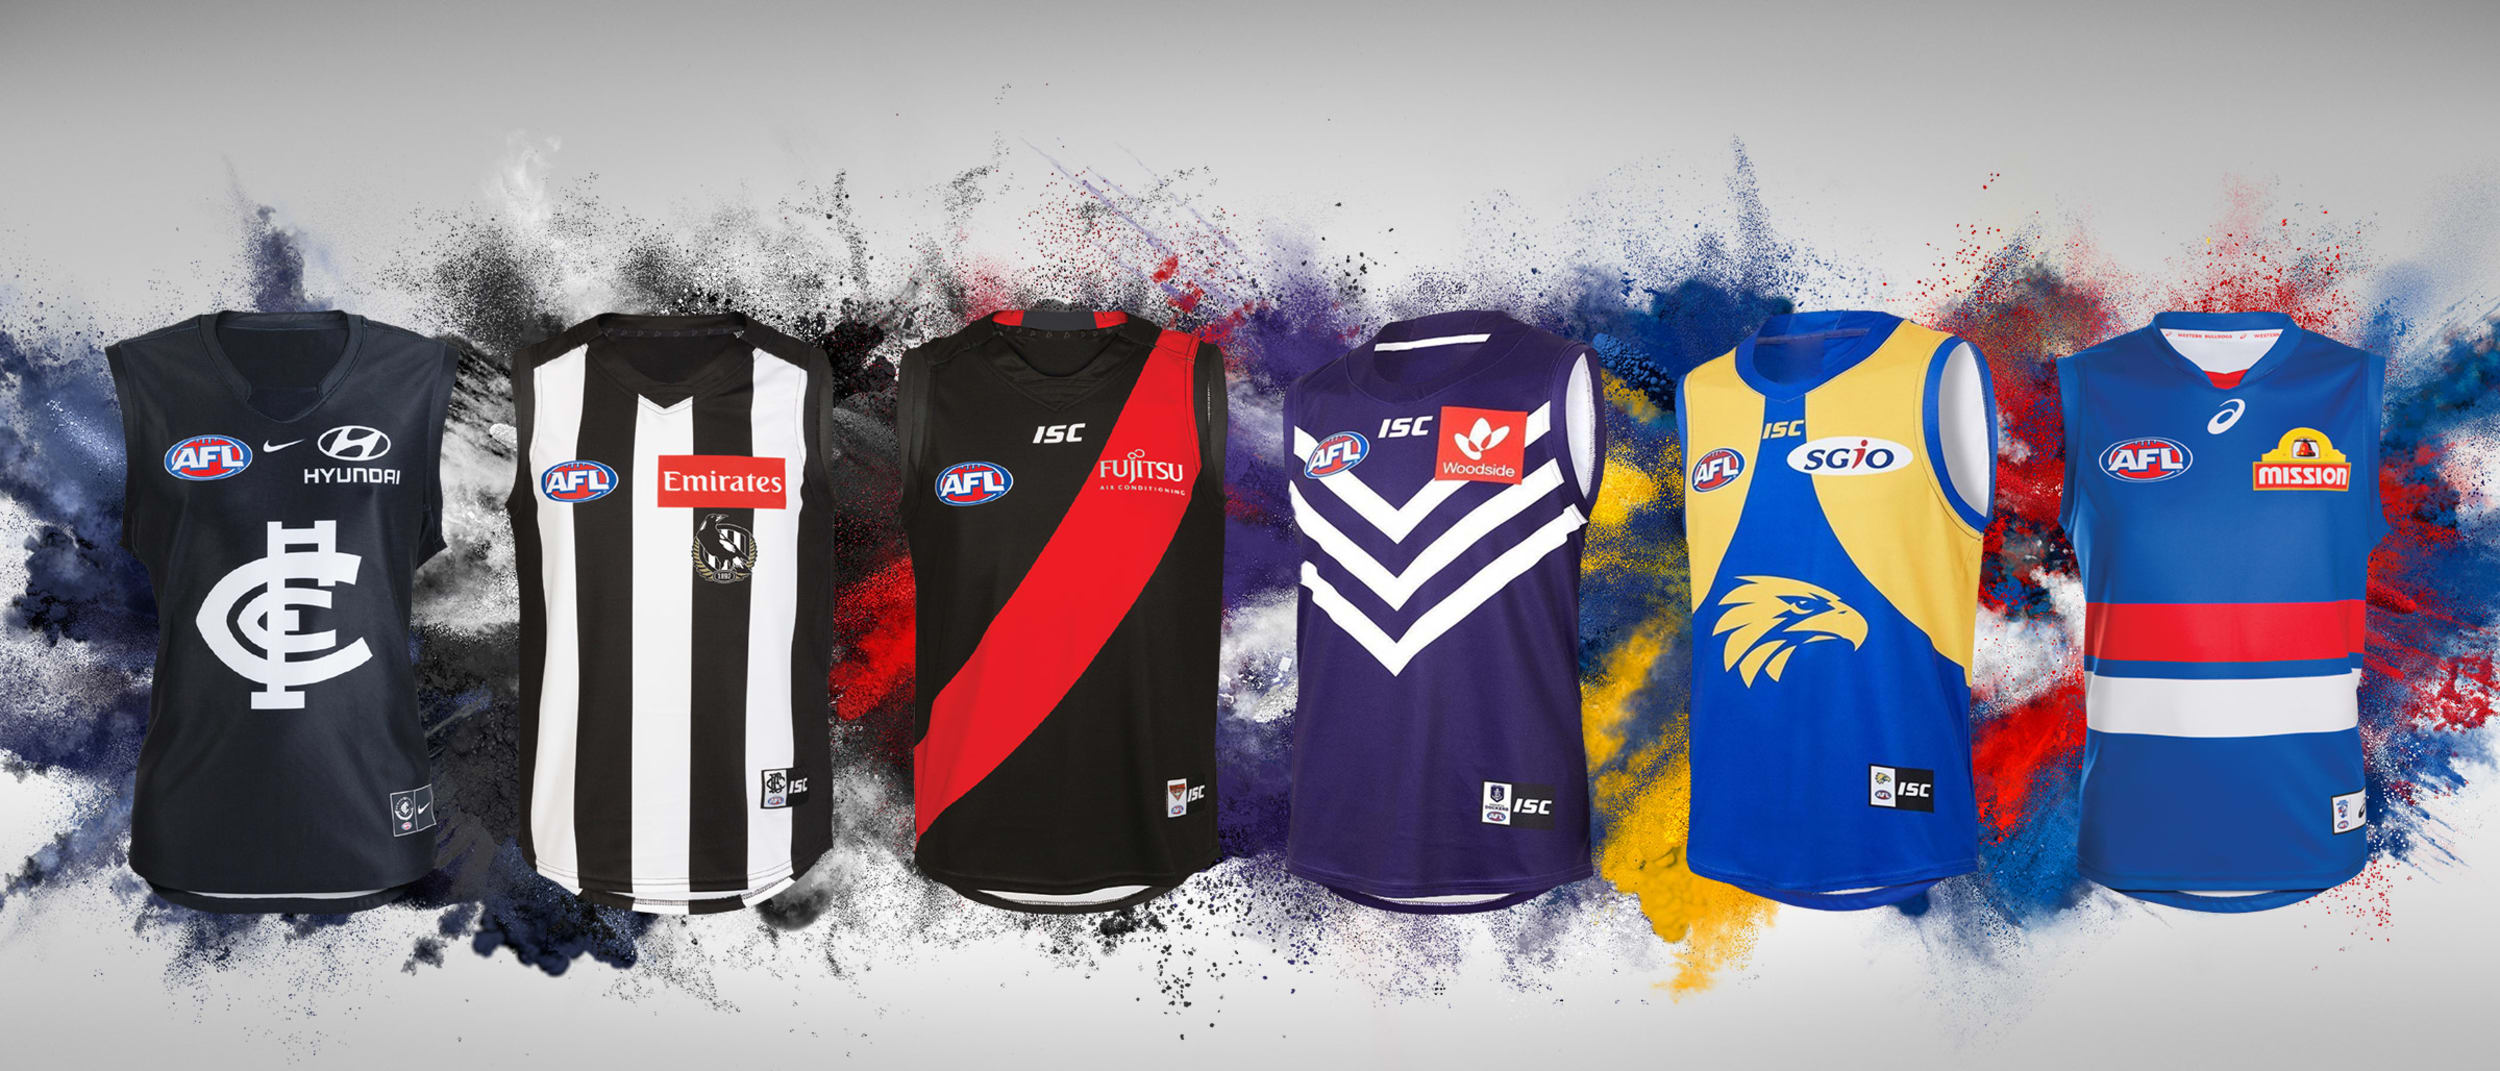 Get game ready at The AFL Store